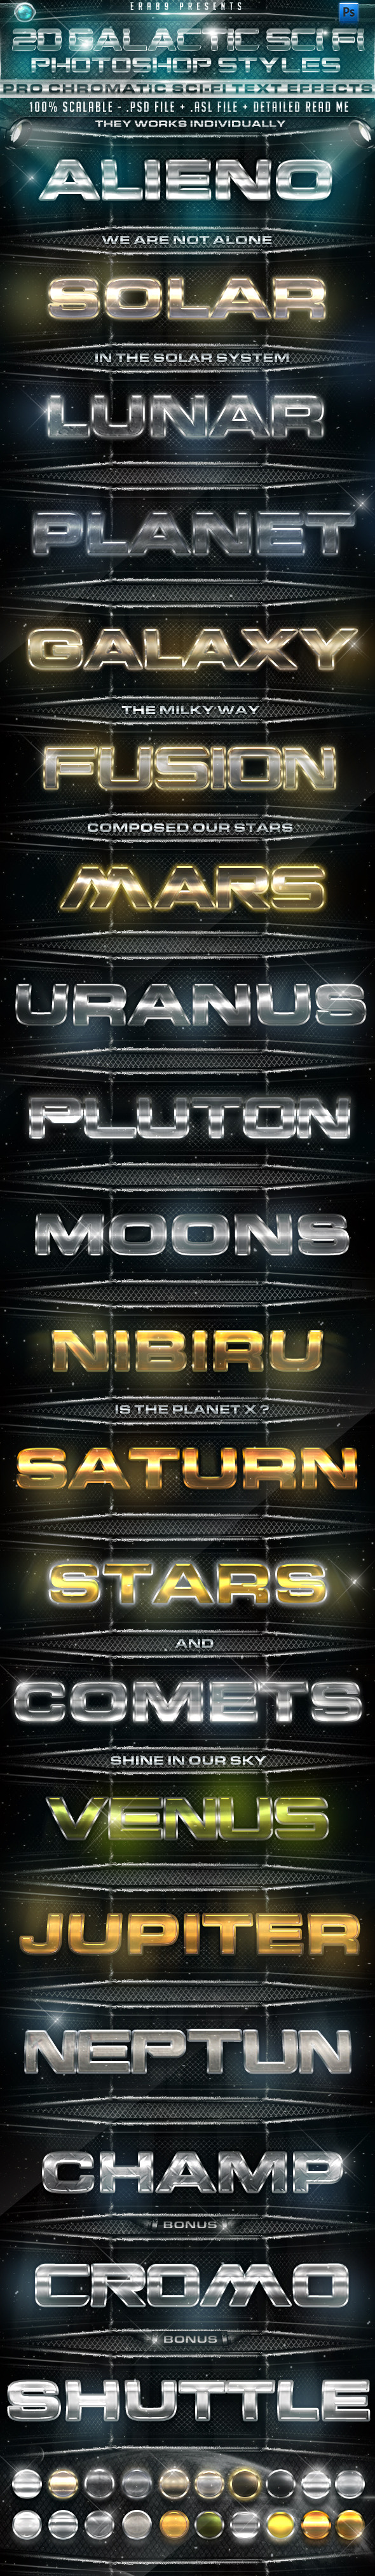 20 Galactic Sci Fi PS Styles - Text Effects Styles